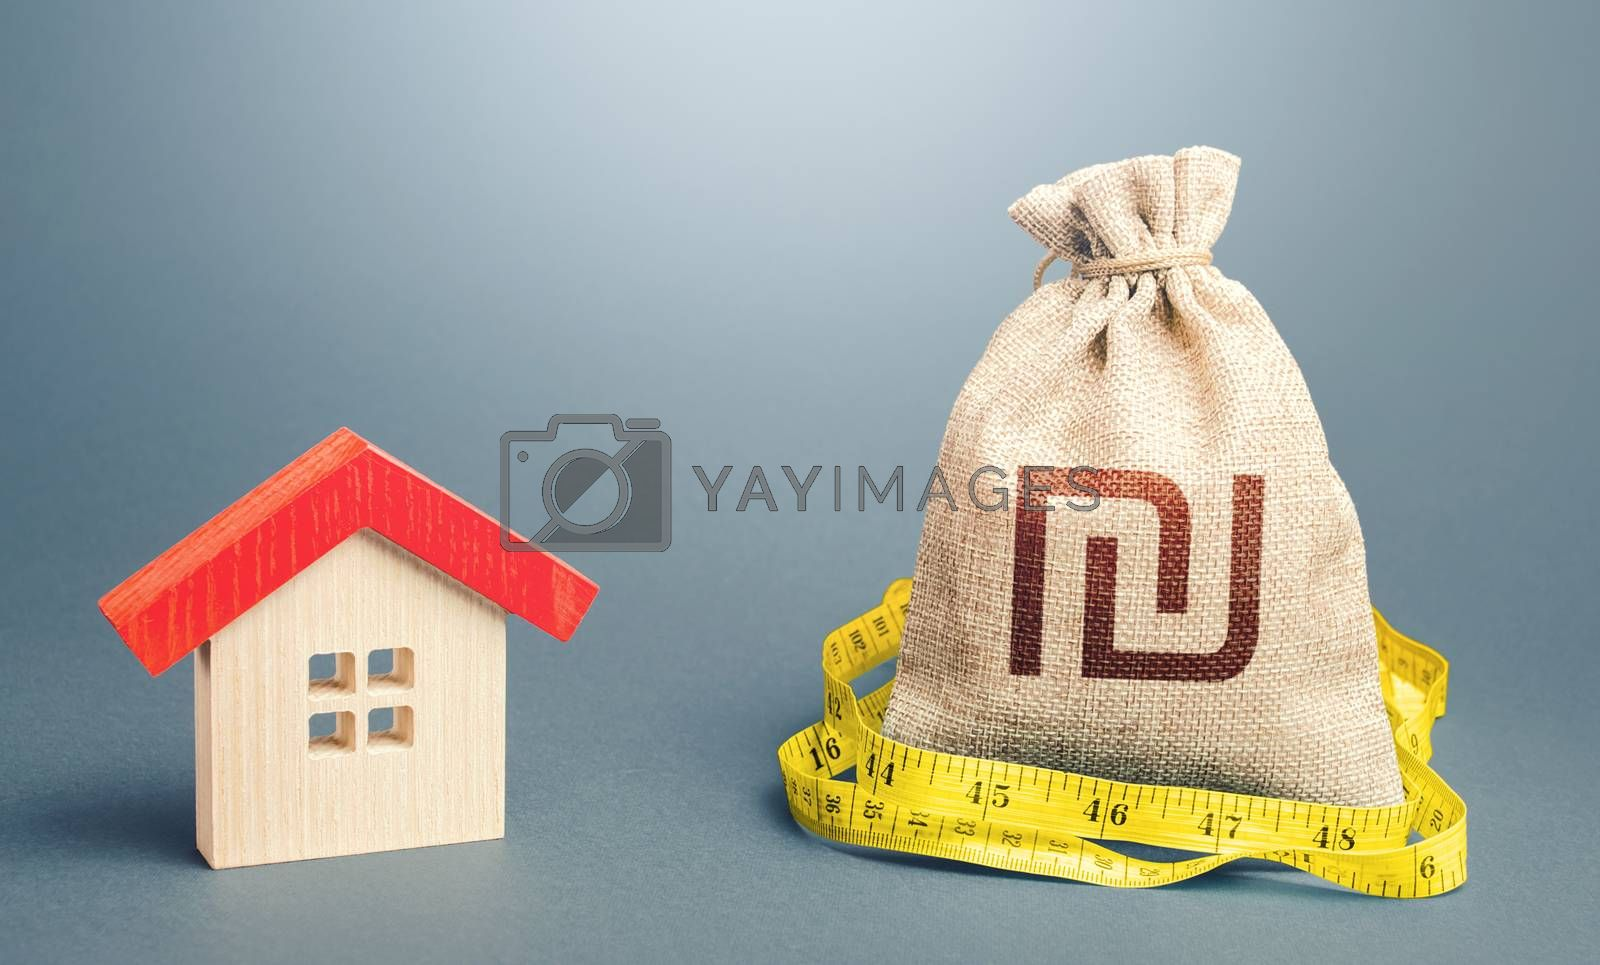 House and israeli shekel money bag. Buying and selling, fair price. Building maintenance. Calculation of expenses for purchase, construction and repair. Mortgage loan. Property real estate valuation.